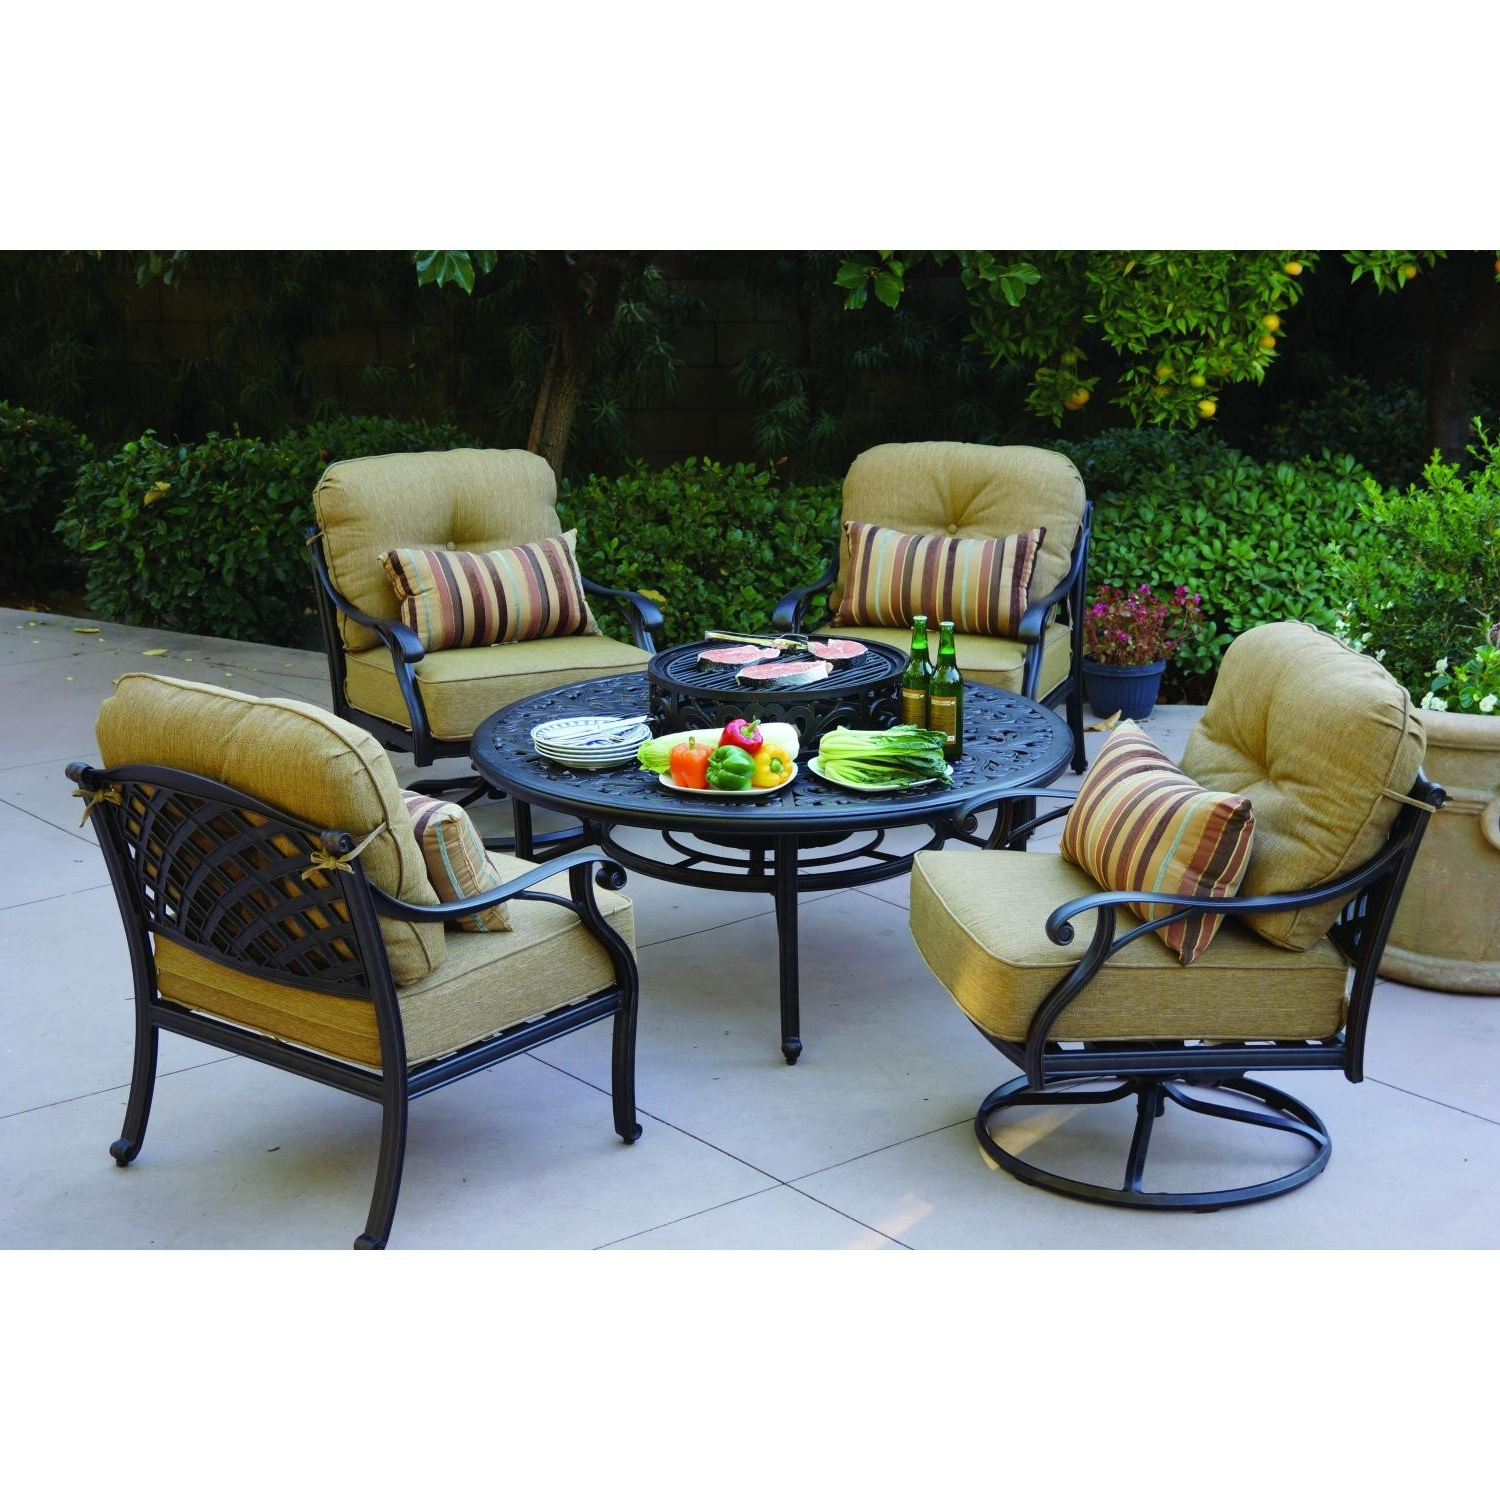 Cheap Patio Furniture Sets Under 300 Outdoor Conversation Sets With With Regard To Widely Used Lowes Patio Furniture Conversation Sets (View 7 of 15)